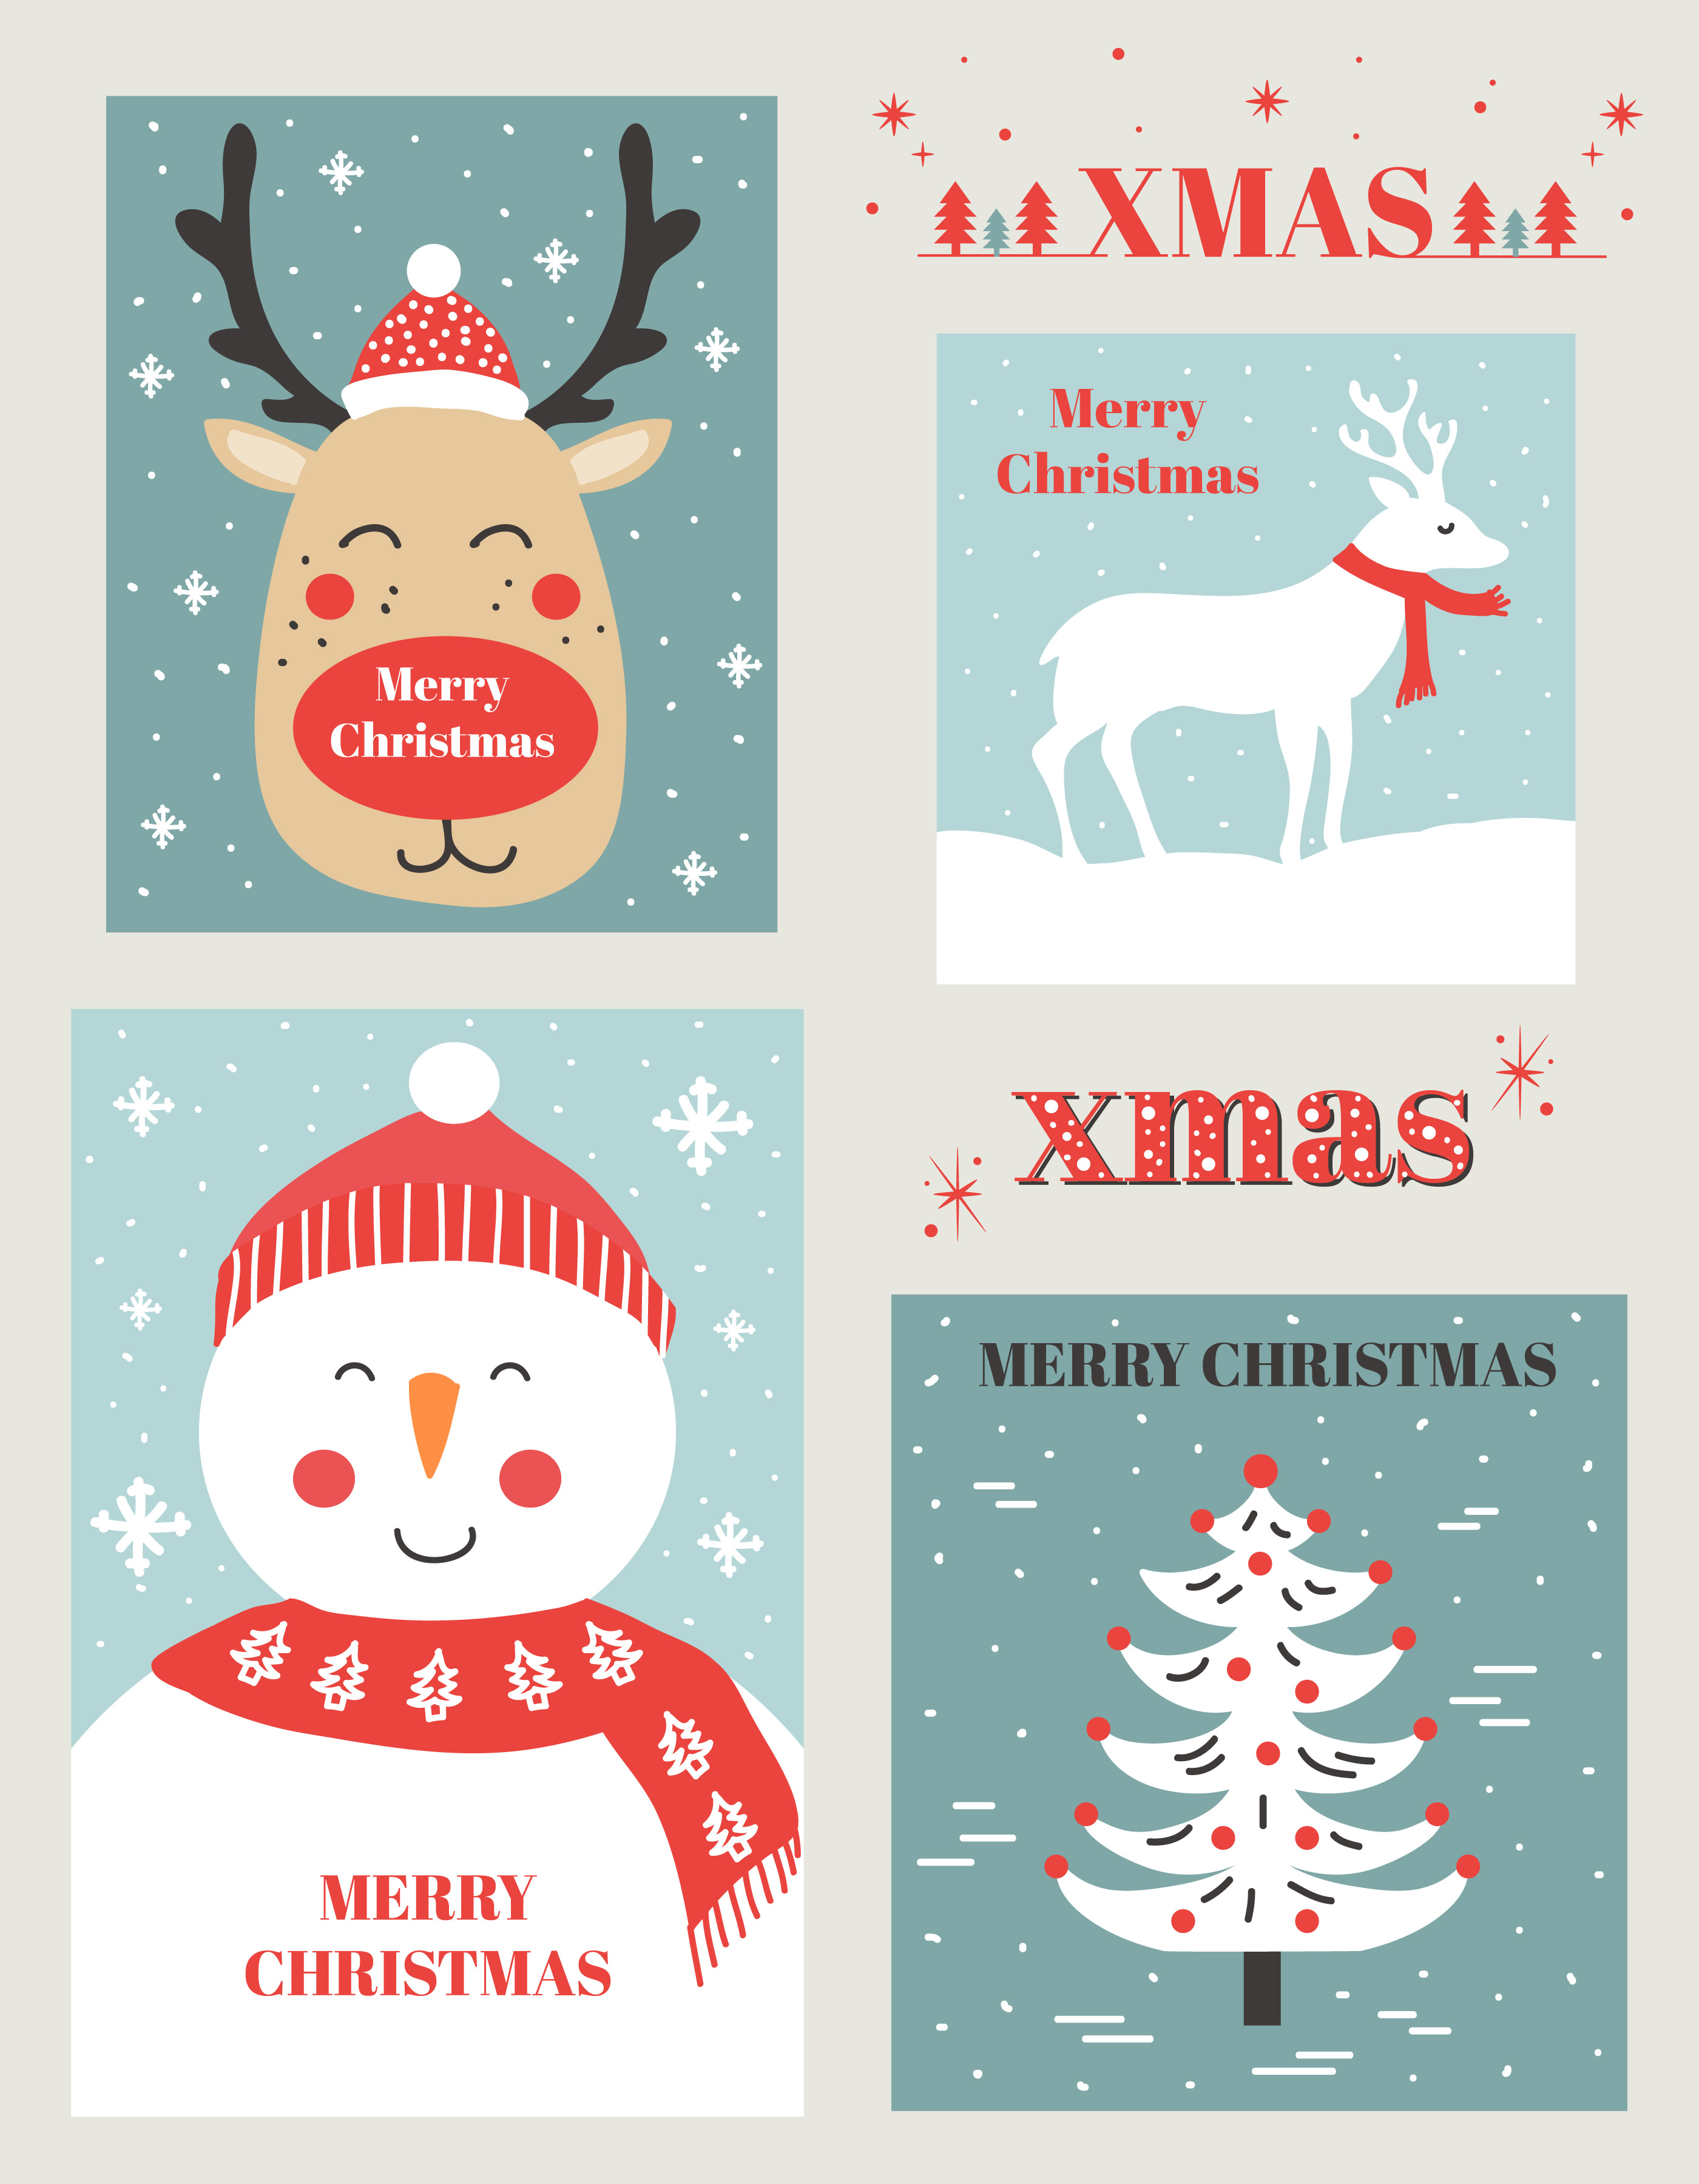 Christmas Cards Vector Set - Download Free Vector Art, Stock ...